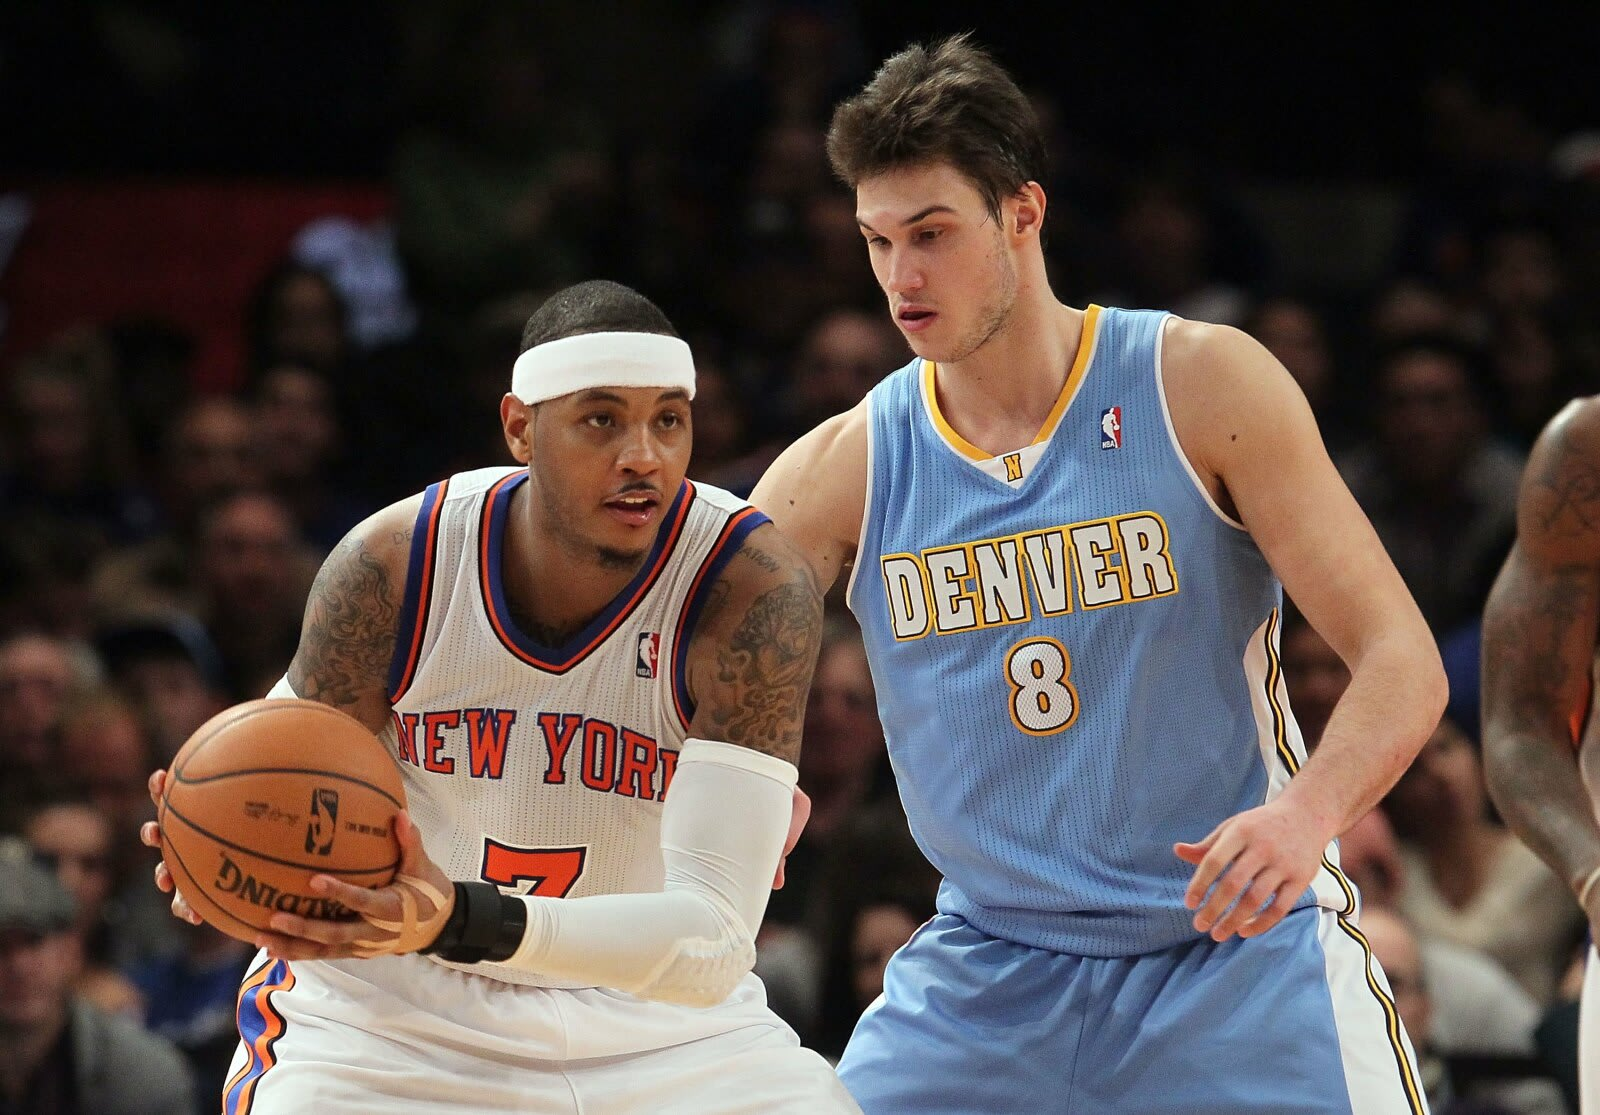 Carmelo Anthony, New York Knicks in action Danilo Gallinari, Denver Nuggets on 21 Jan. 2012 at Madison Square Garden in New York City. (Photo by Jim McIsaac/Getty Images)